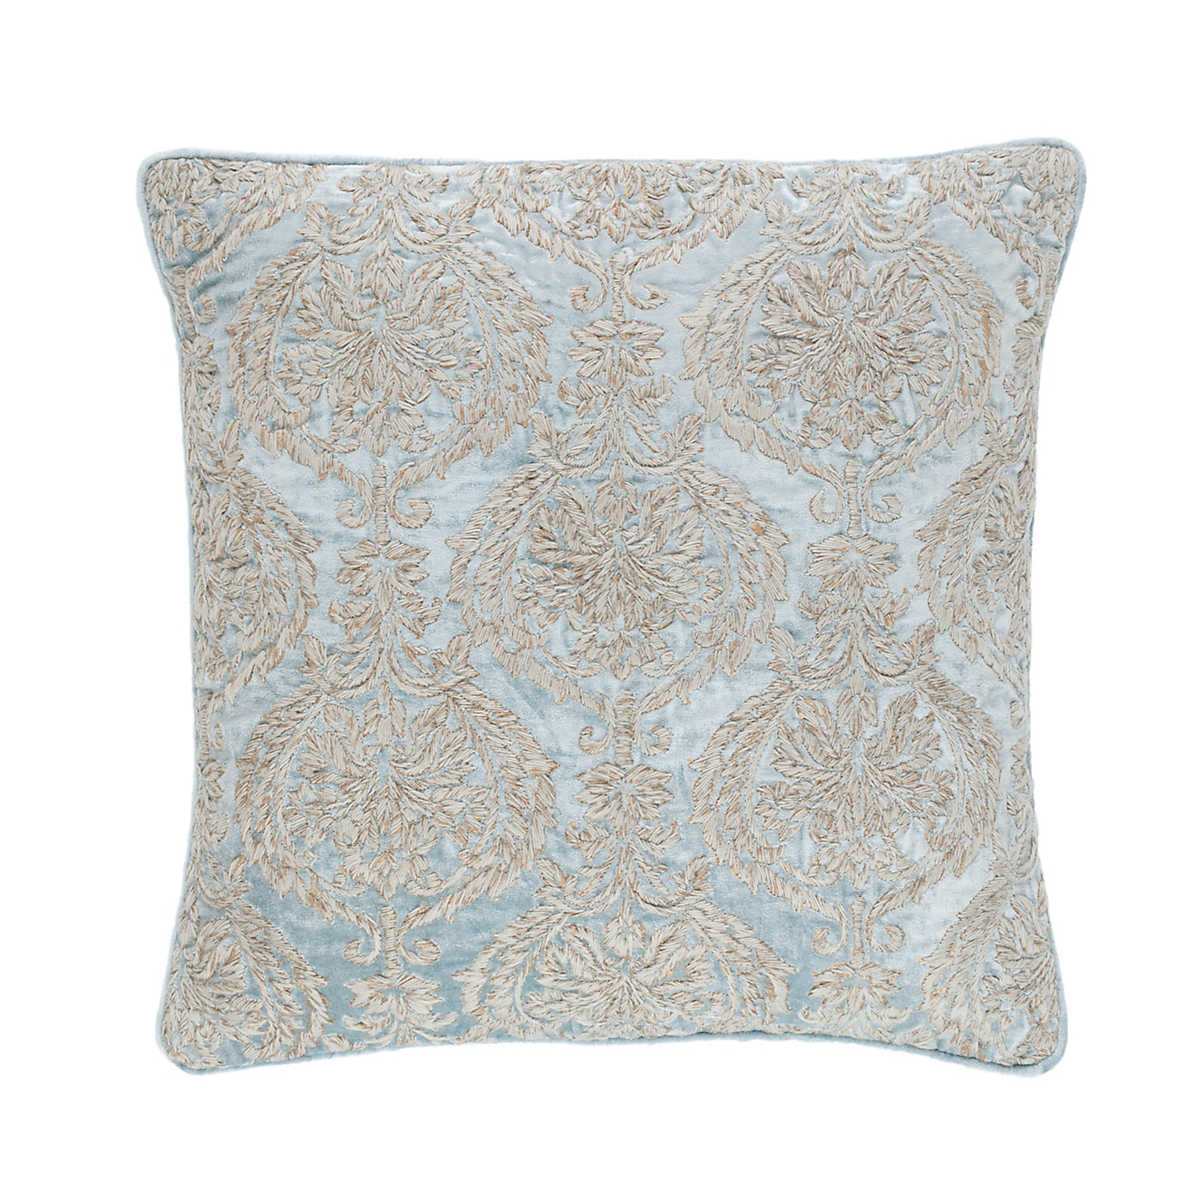 Now 70% Off! Damask Velvet Embroidered Robin s Egg Blue Decorative Pillow a20b3eb9e